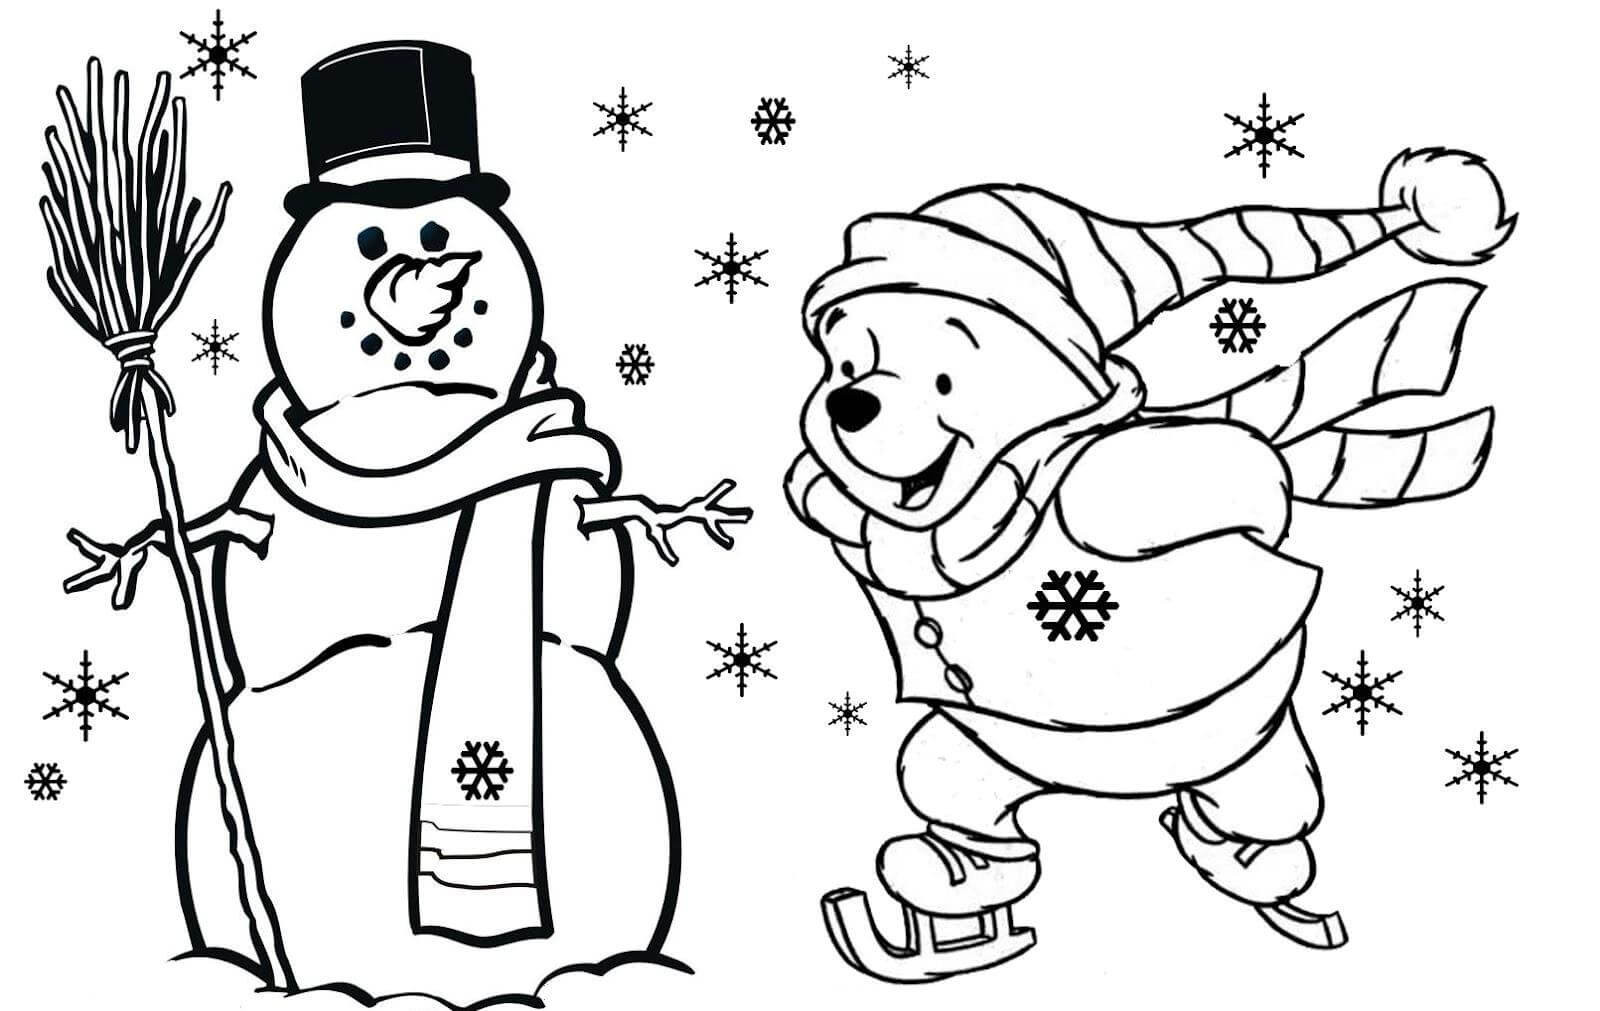 Christmas Coloring Sheets For Kids Free  Christmas Coloring Pages To Print Free